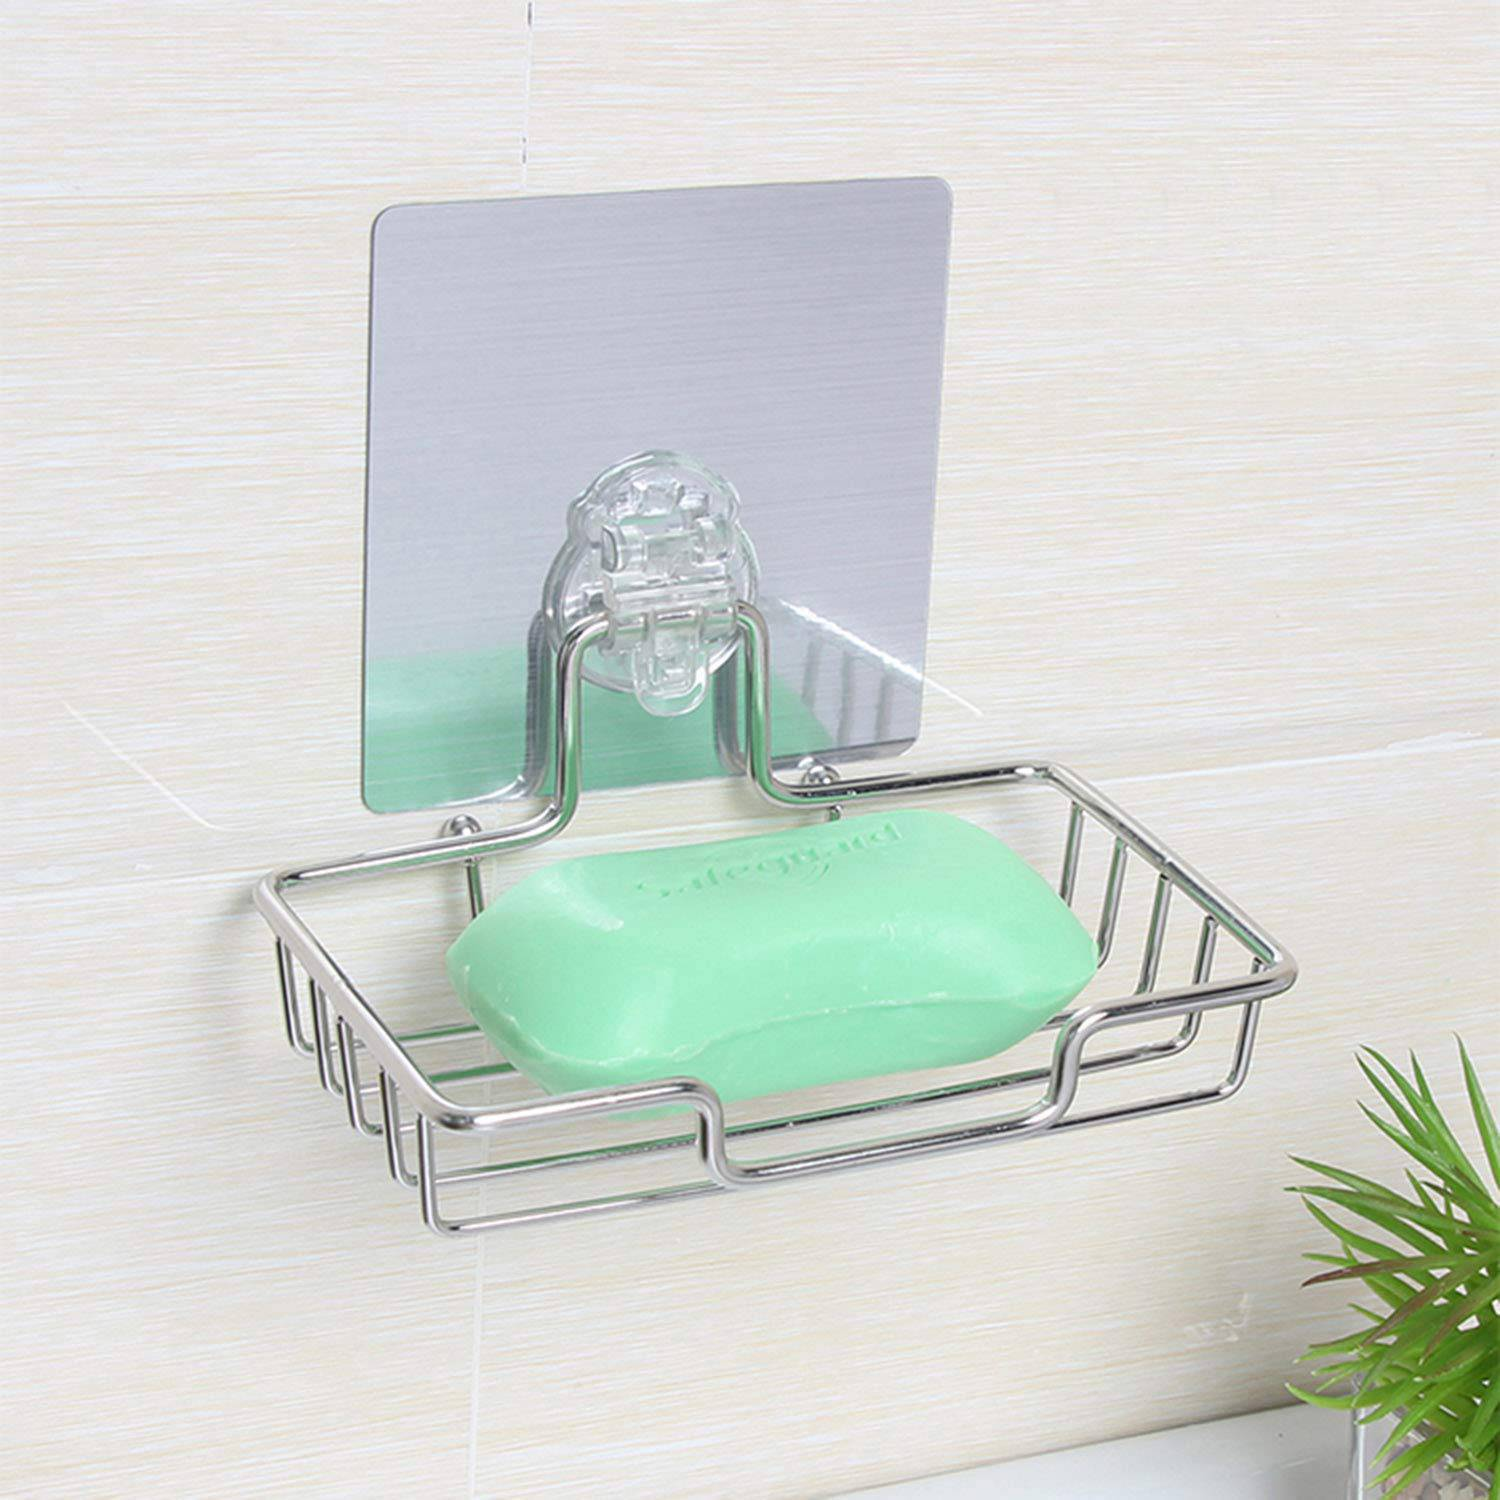 AND007570. Stainless Steel Soap Holder